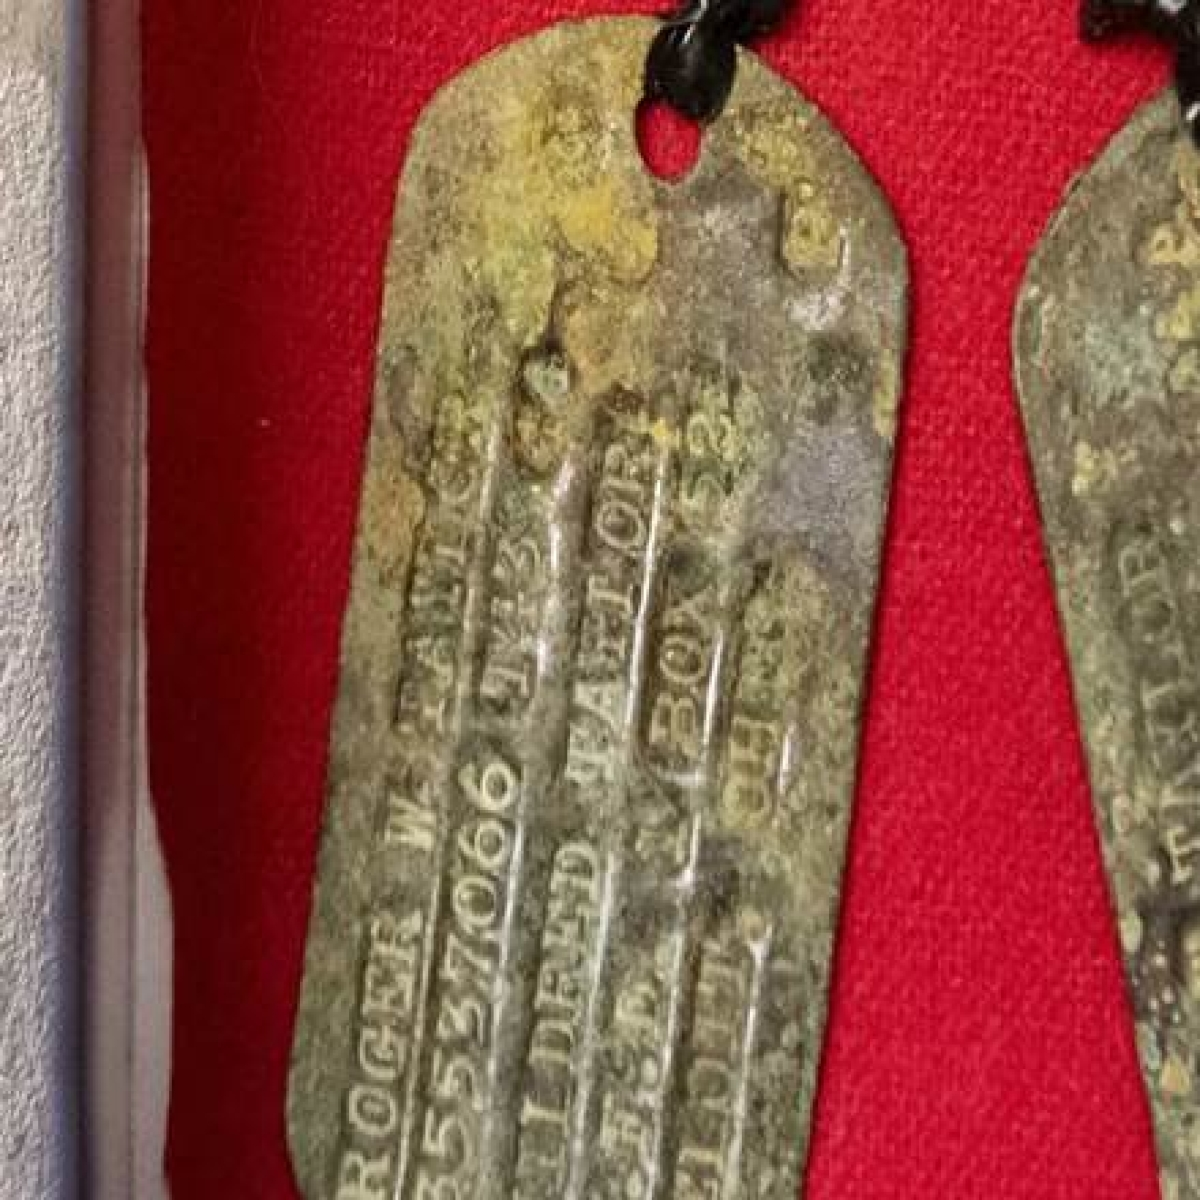 After 75 yrs, dog tags of WWII soldier killed in battle of Bulge, return home